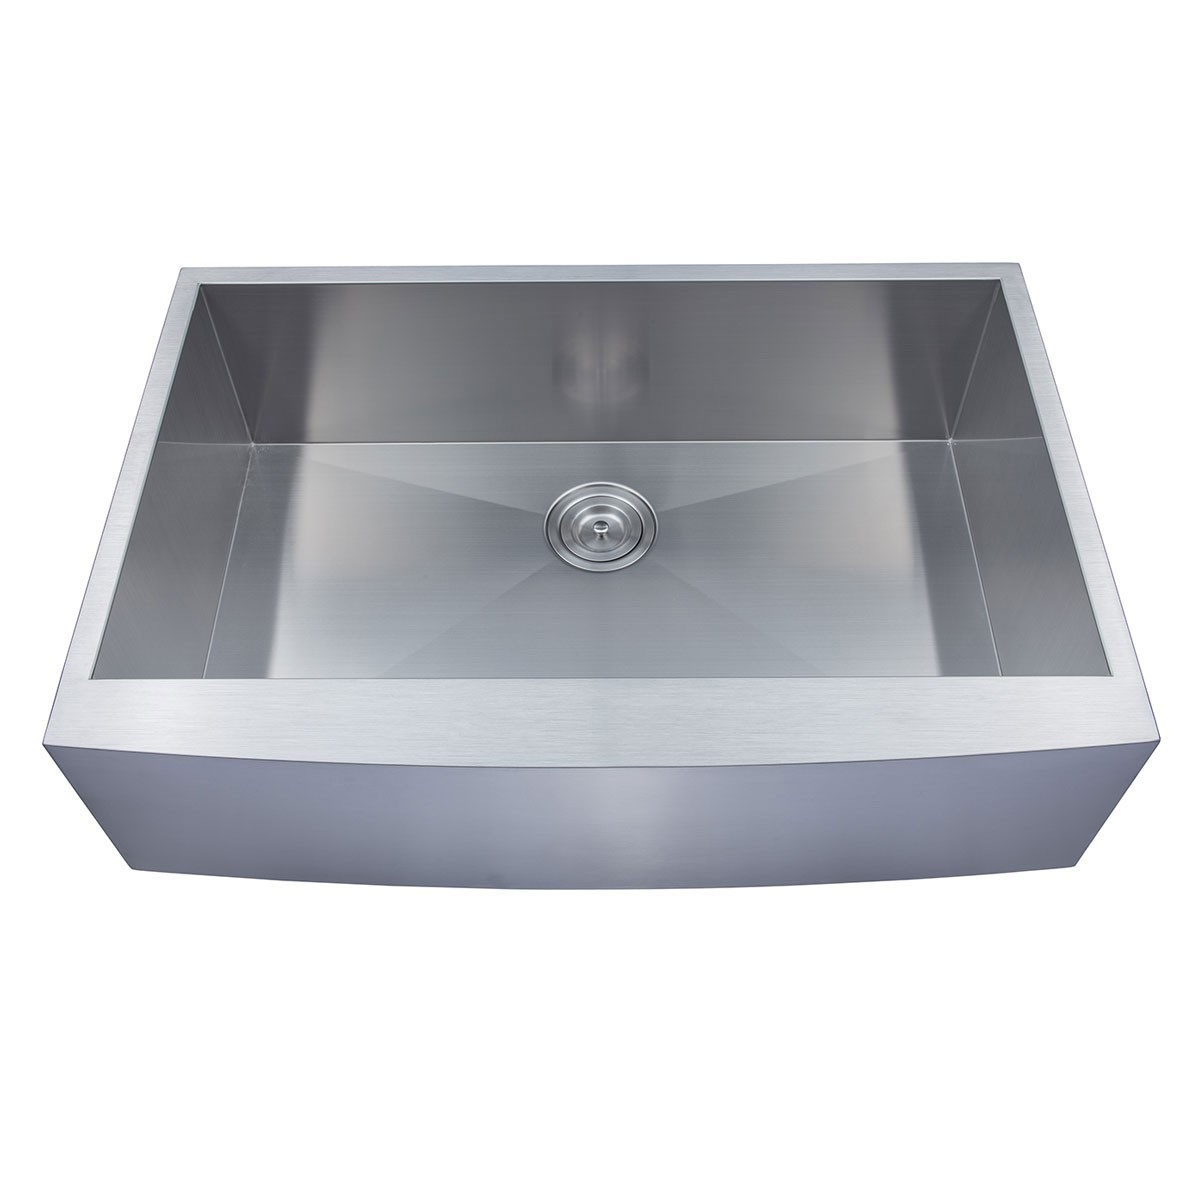 33 x 22 In. Stainless Steel Single Bowl Handmade Kitchen Sink (AF3322-R0)